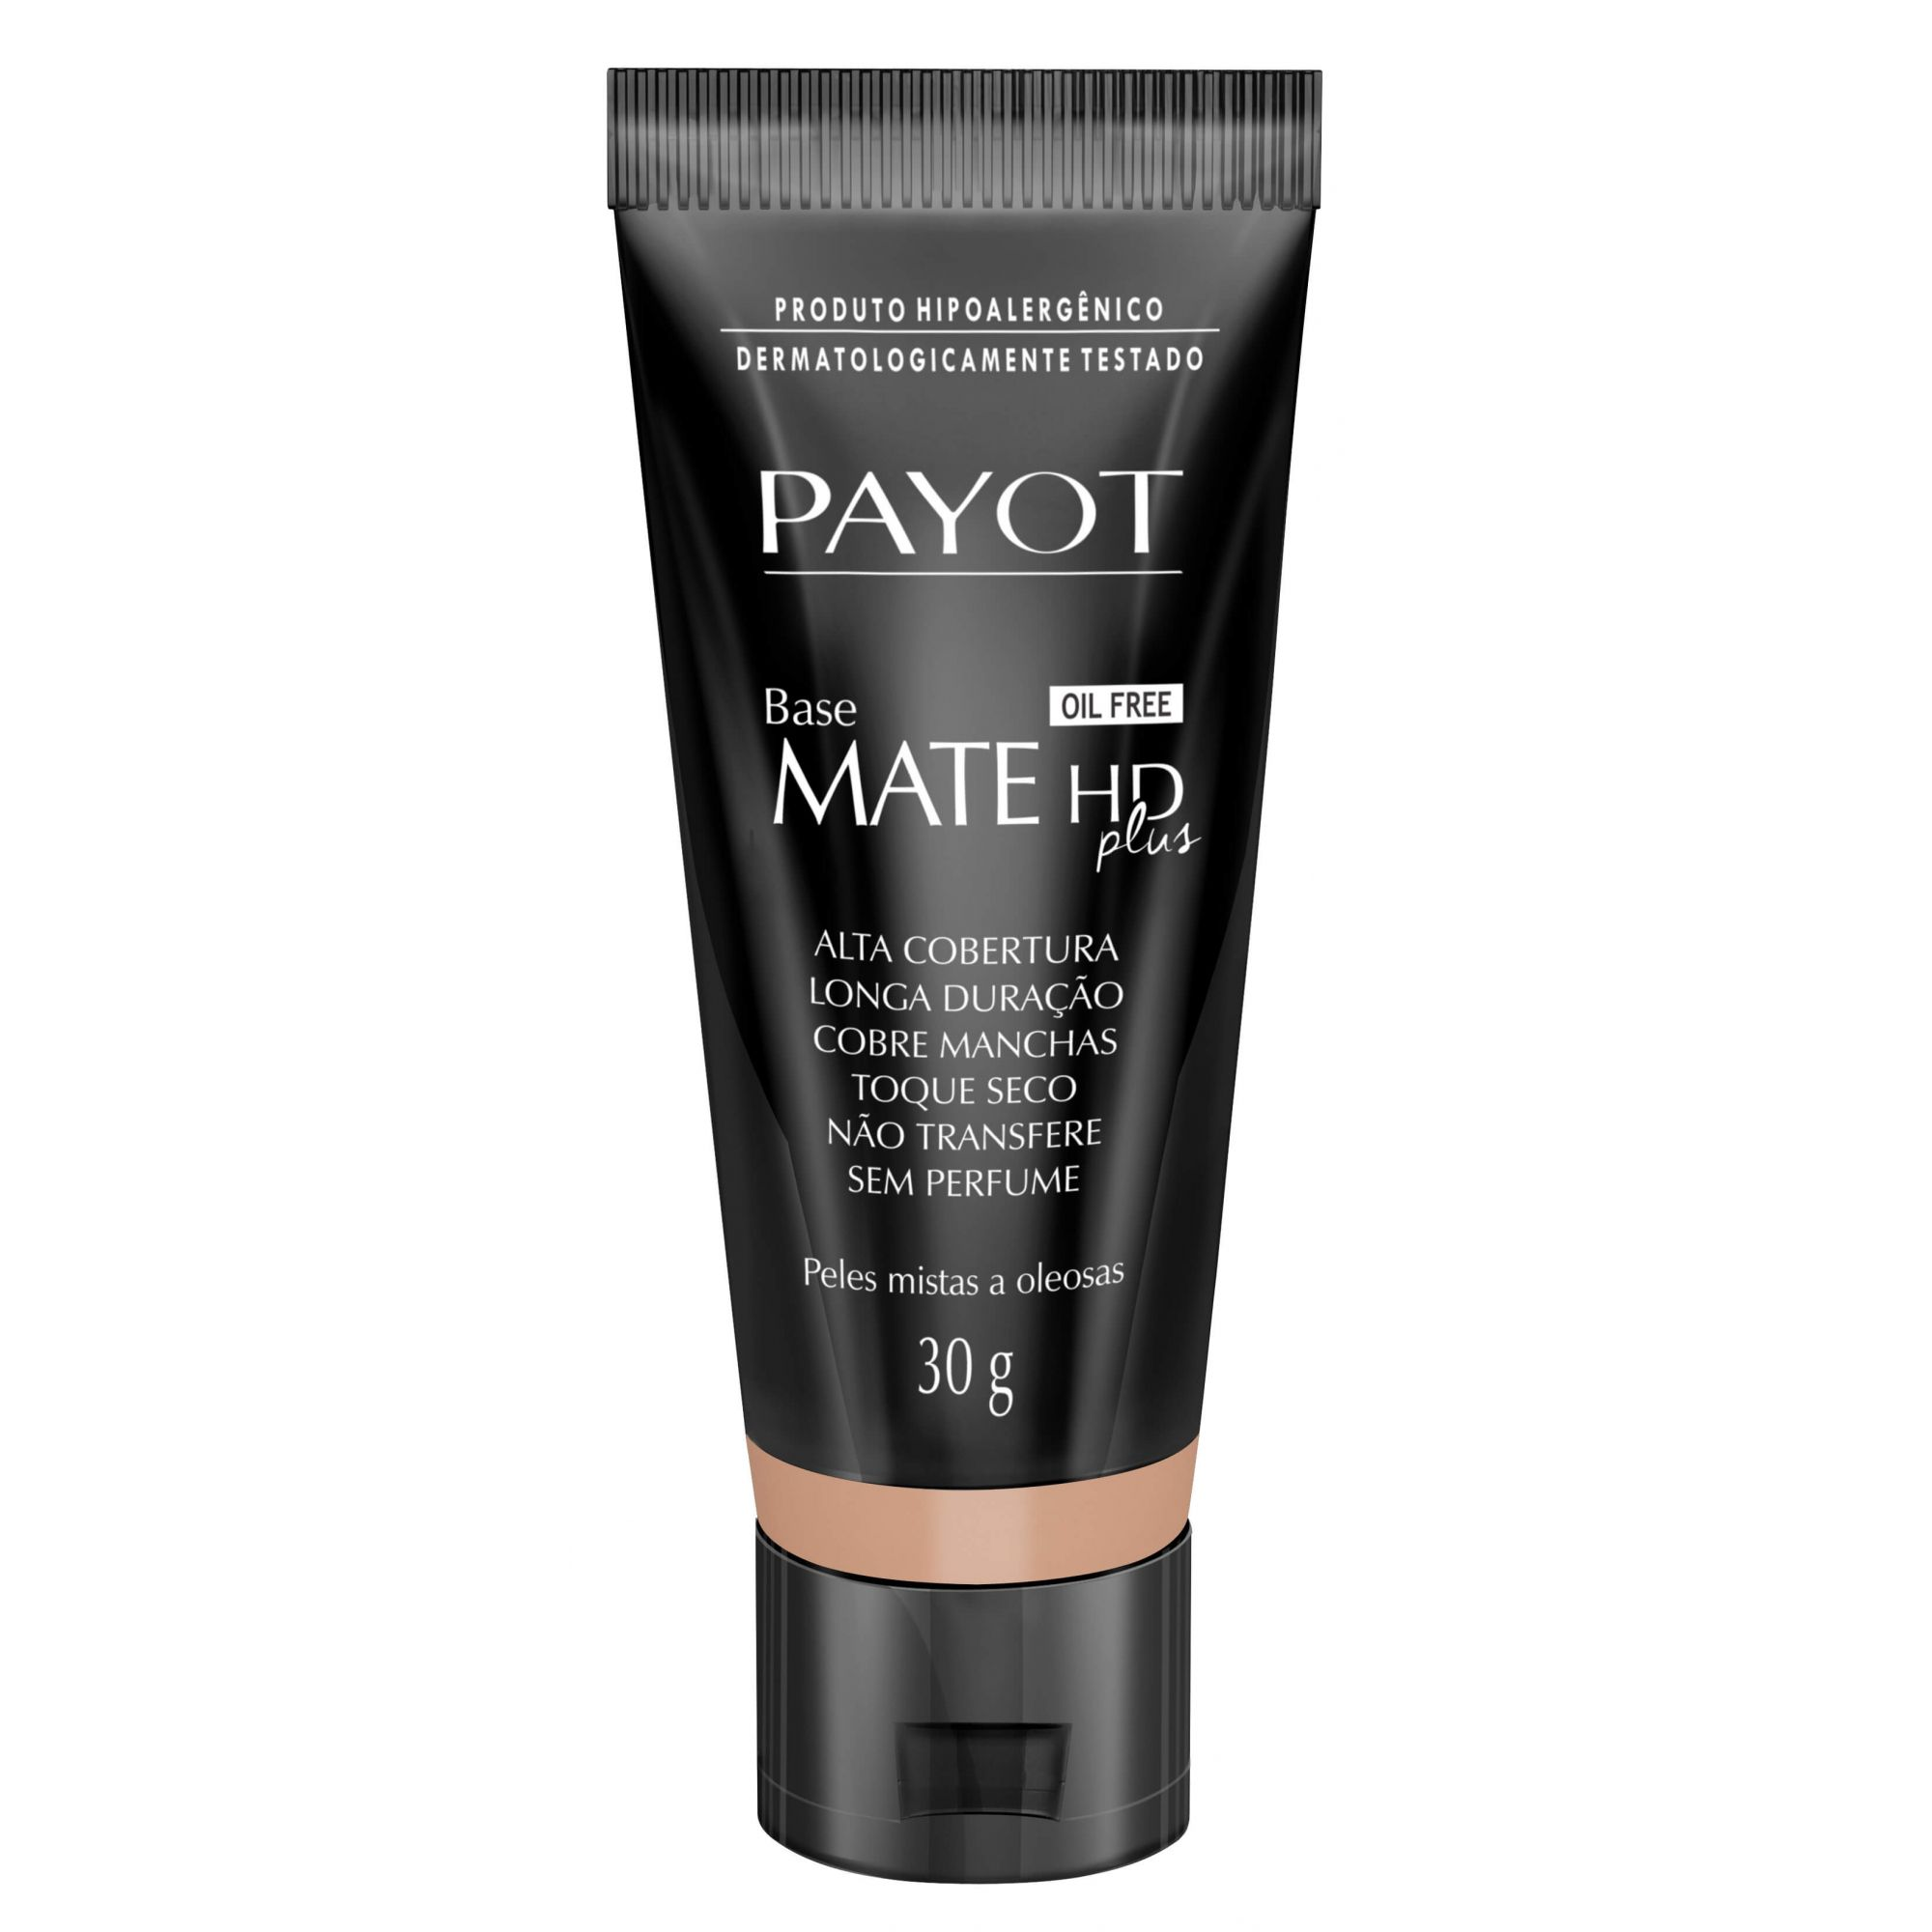 Base Mate HD Plus Payot Bronze - Base Líquida Mate 30g